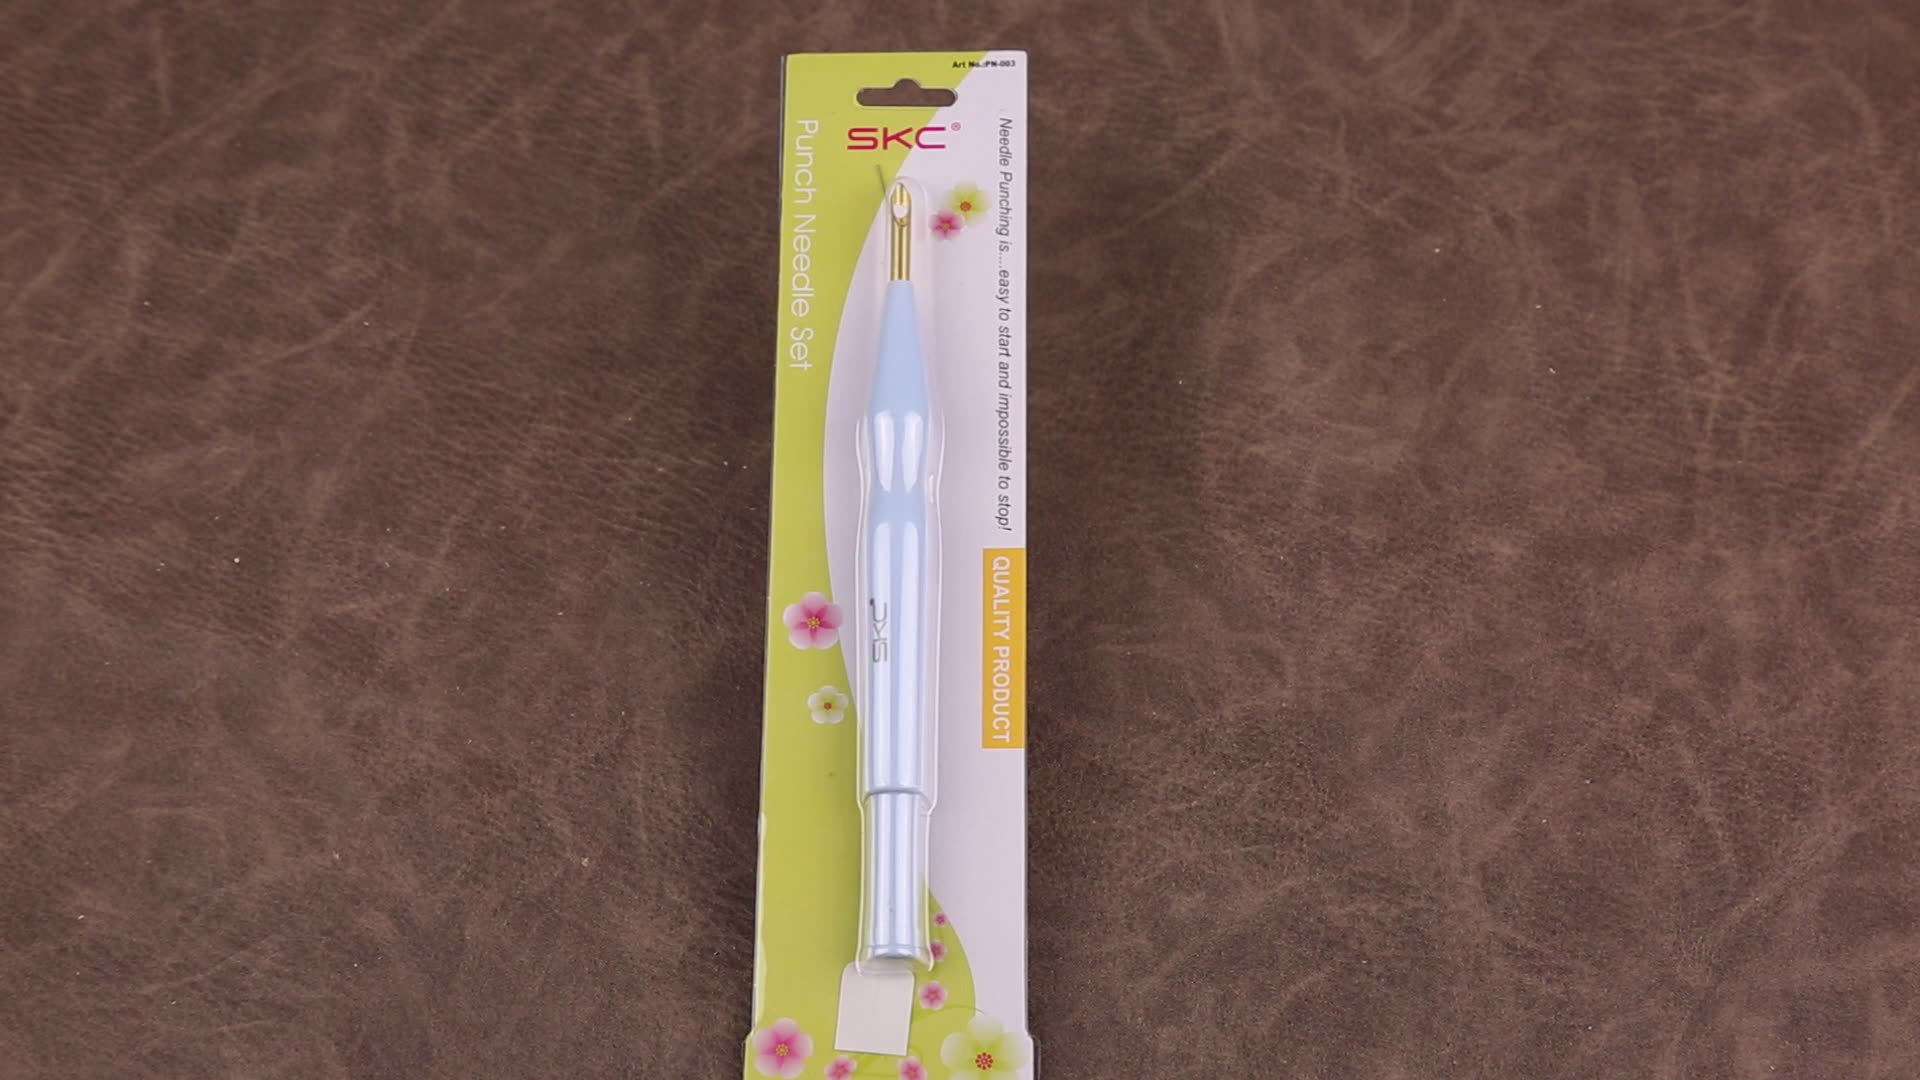 SKC Knitting Tool Embroidery Pen Adjustable Punch Needles Set